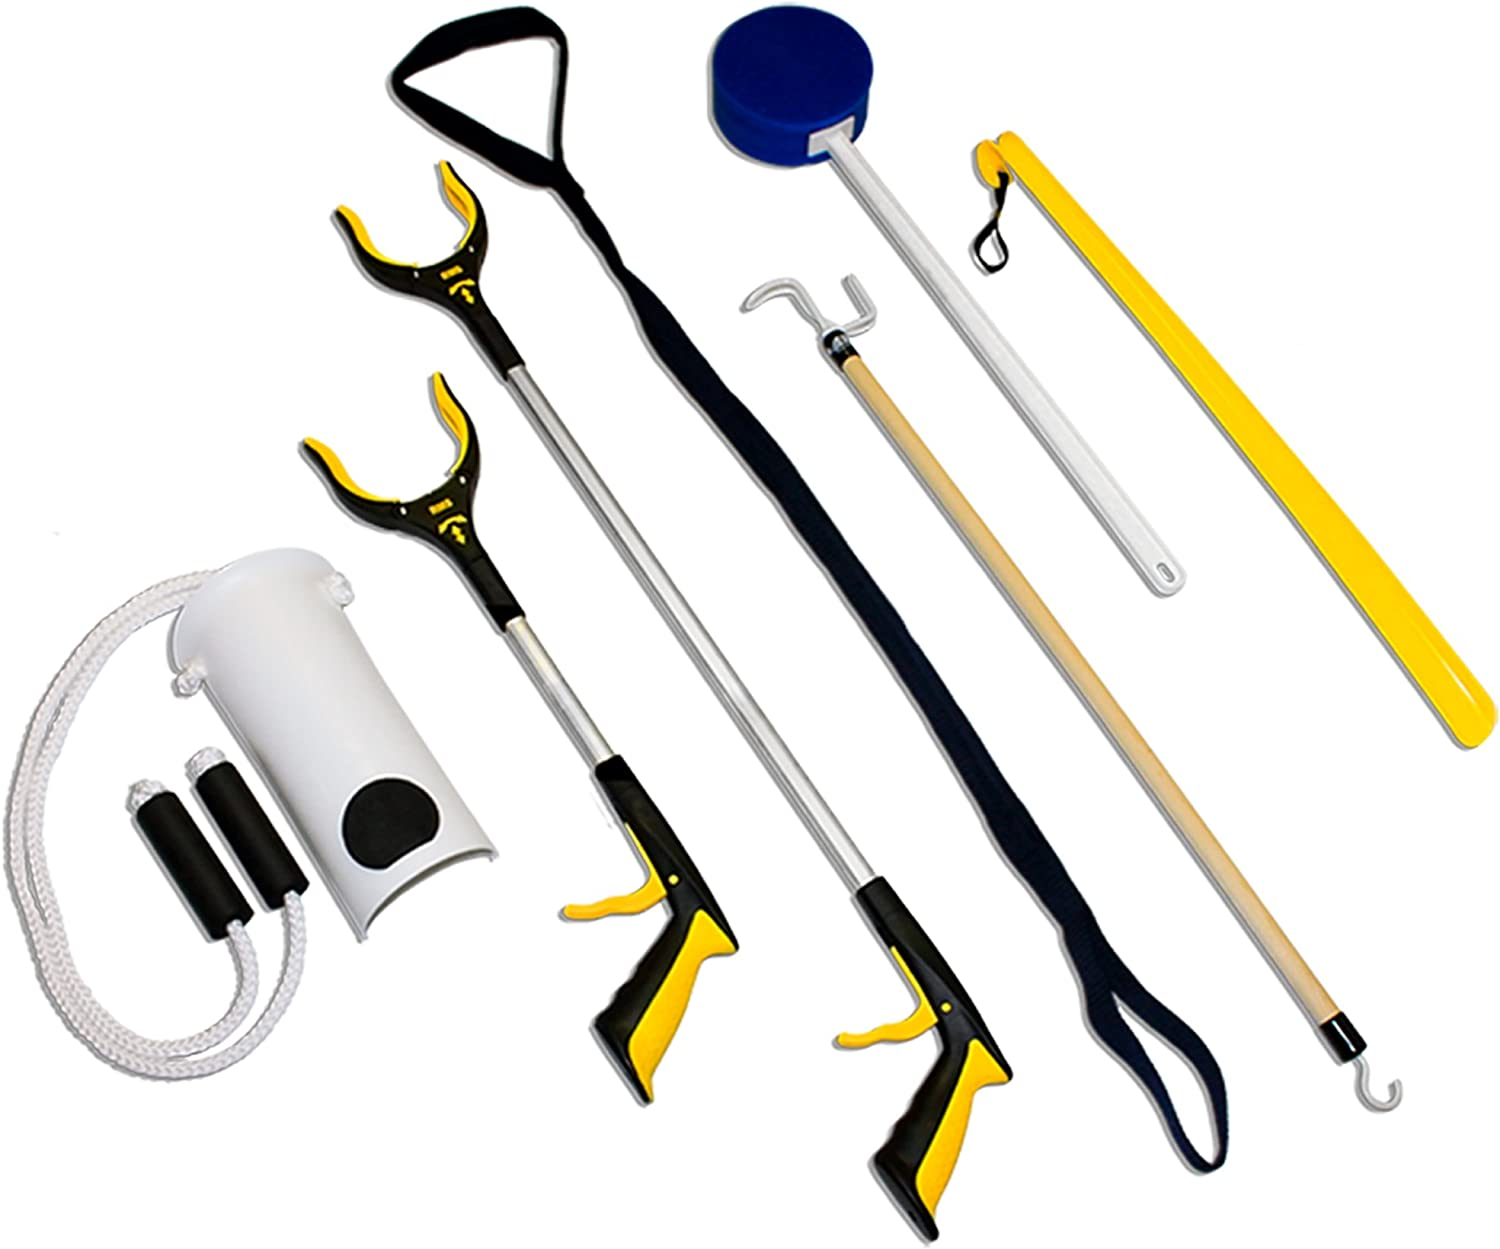 RMS 7-Piece Hip Knee Replacement Kit with Leg Lifter, 19 and 32 inch Rotating Reacher Grabber, Long Handle Shoe Horn, Sock Aid, Dressing Stick, Bath Sponge - Ideal for Knee or Back Surgery Recovery: Health & Personal Care